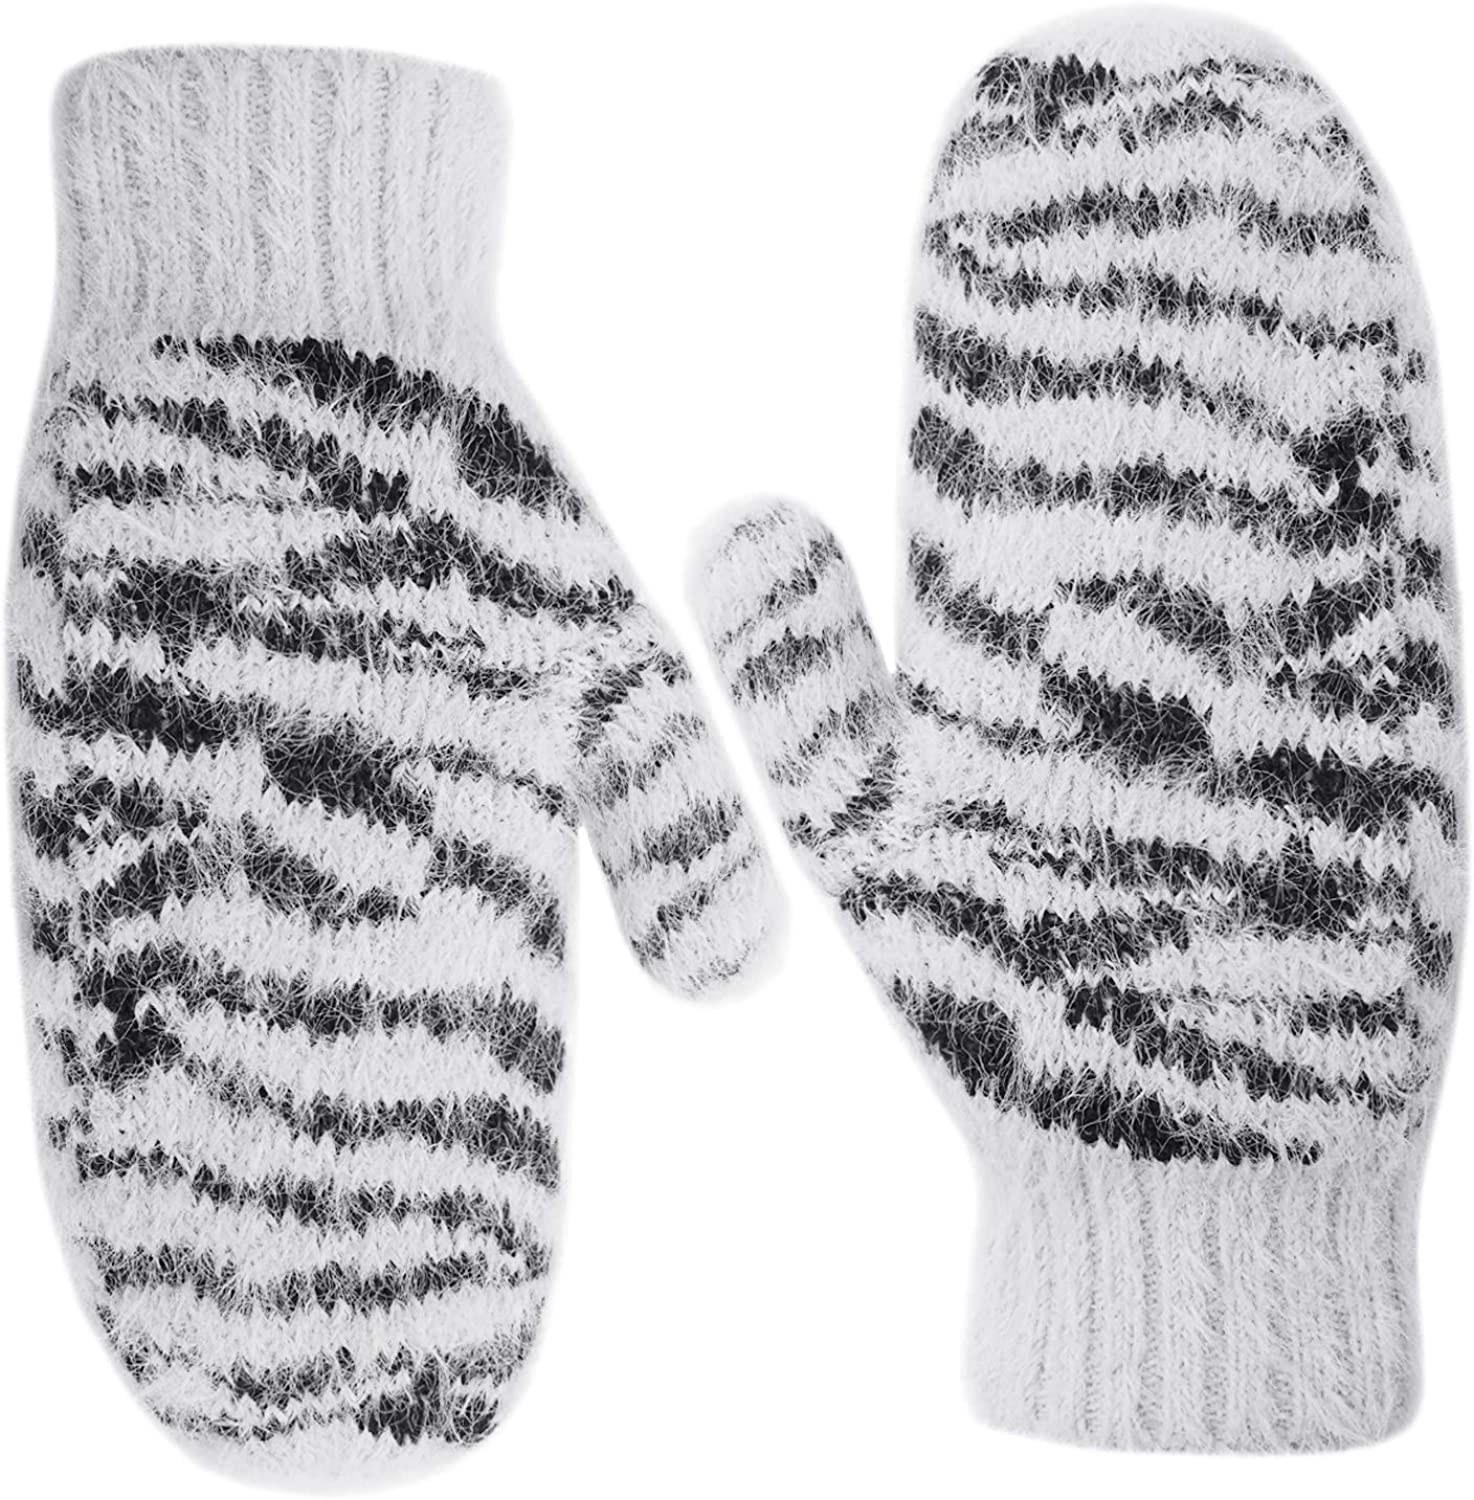 Zenssia Women's Soft and Warm Knitted Plush Fleece Winter Mittens with Unique Zebra-Striped Pattern